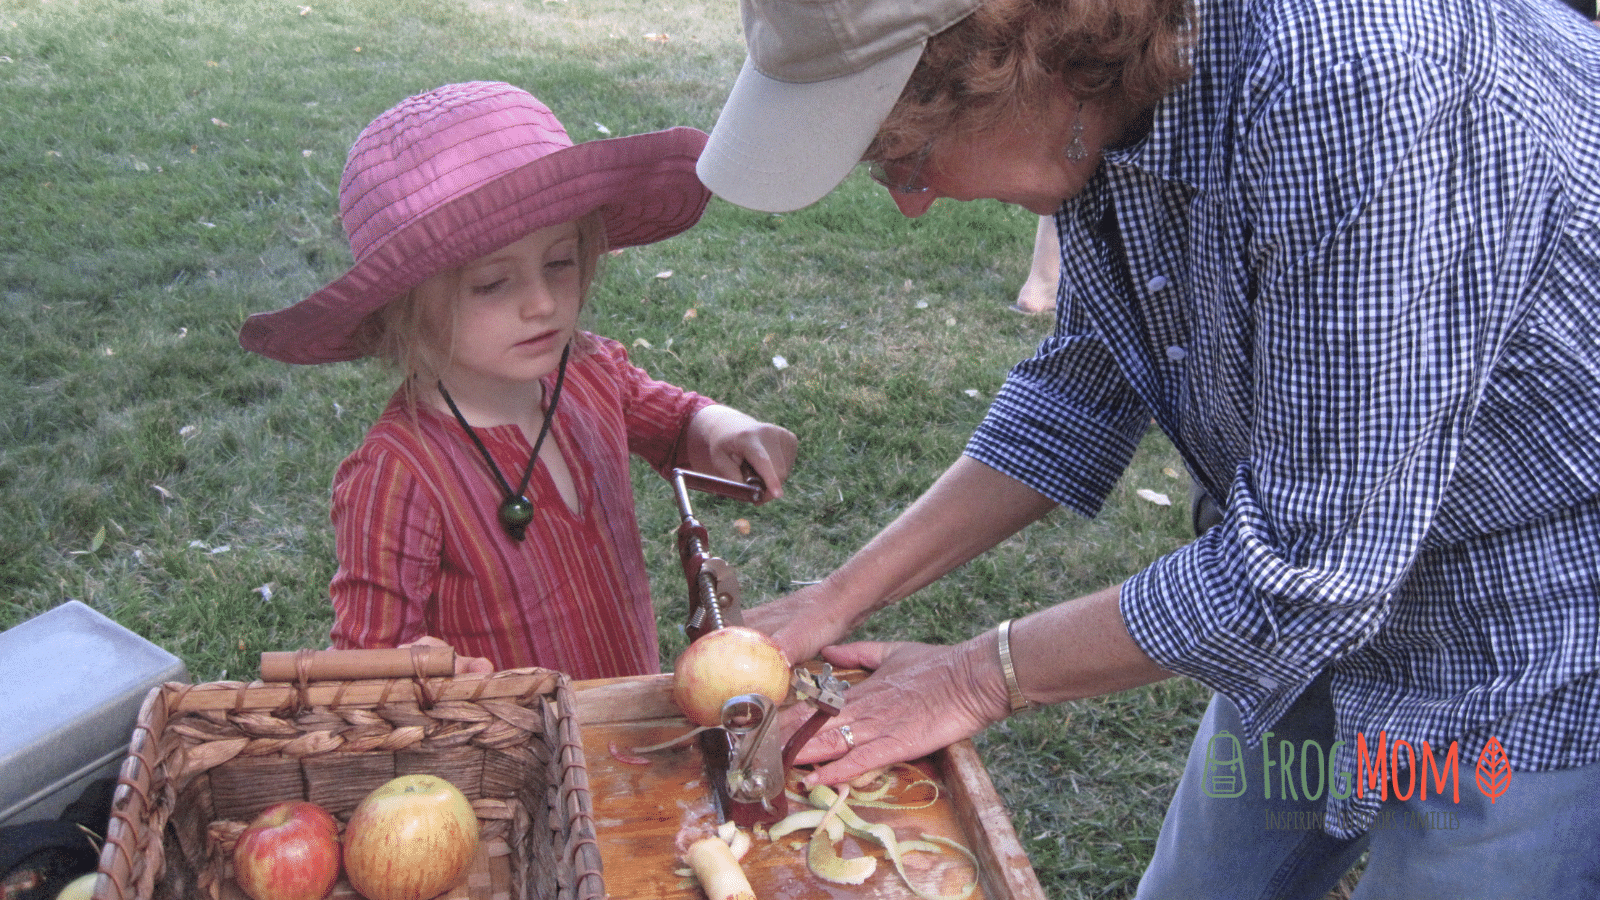 Child peeling an apple with an old-fashioned apple peeling machine at Ravenswood Historic Site's harvest festival, Applefest